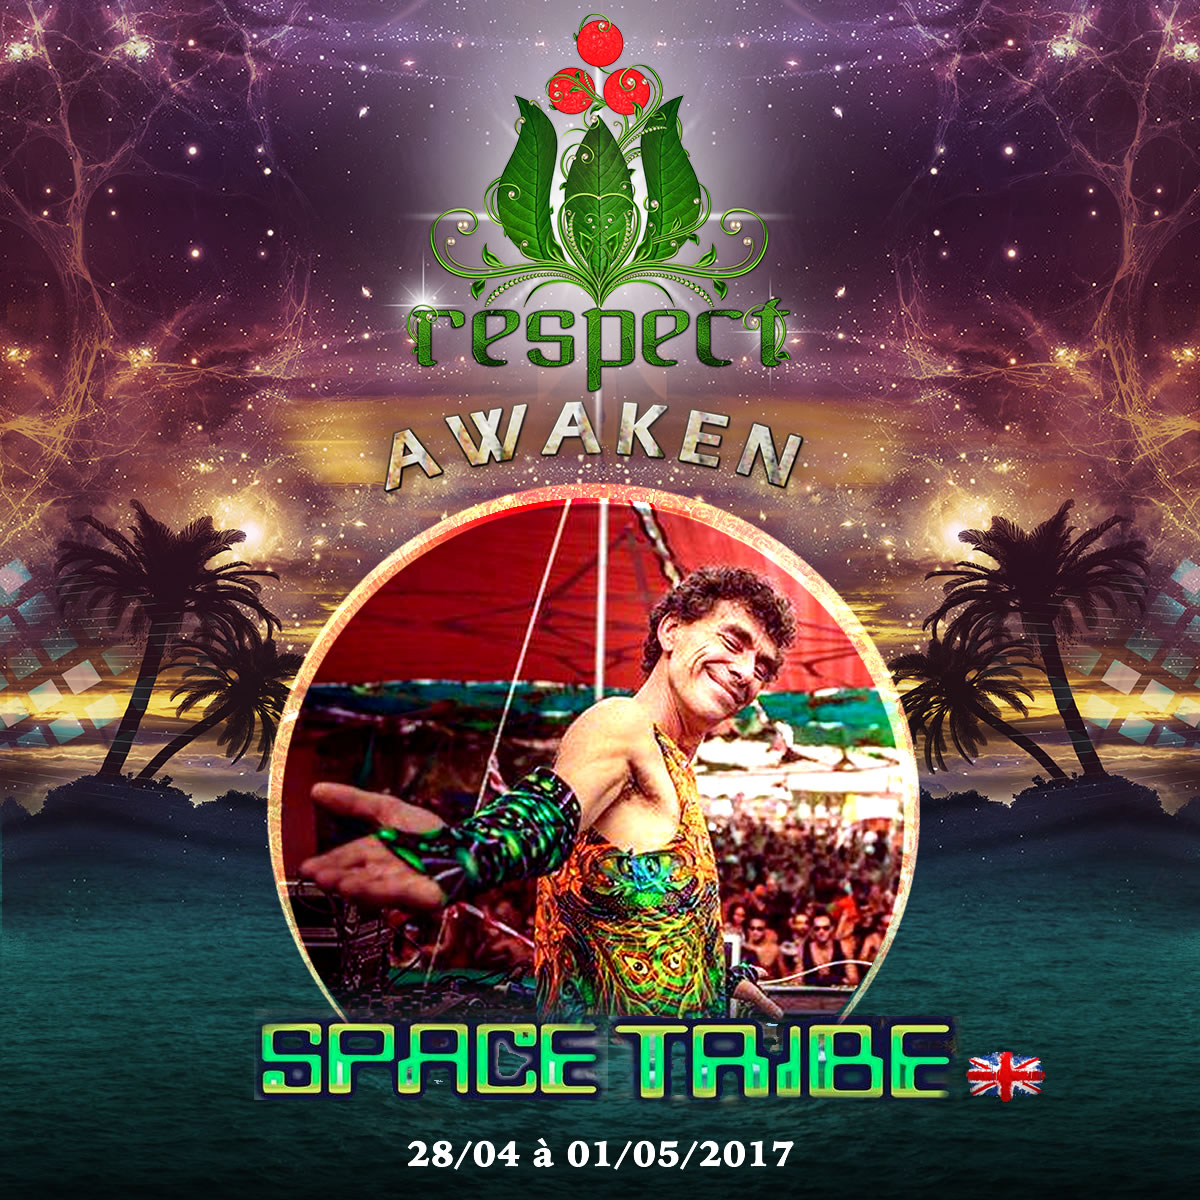 Space Tribe @ Respect Awaken 2017